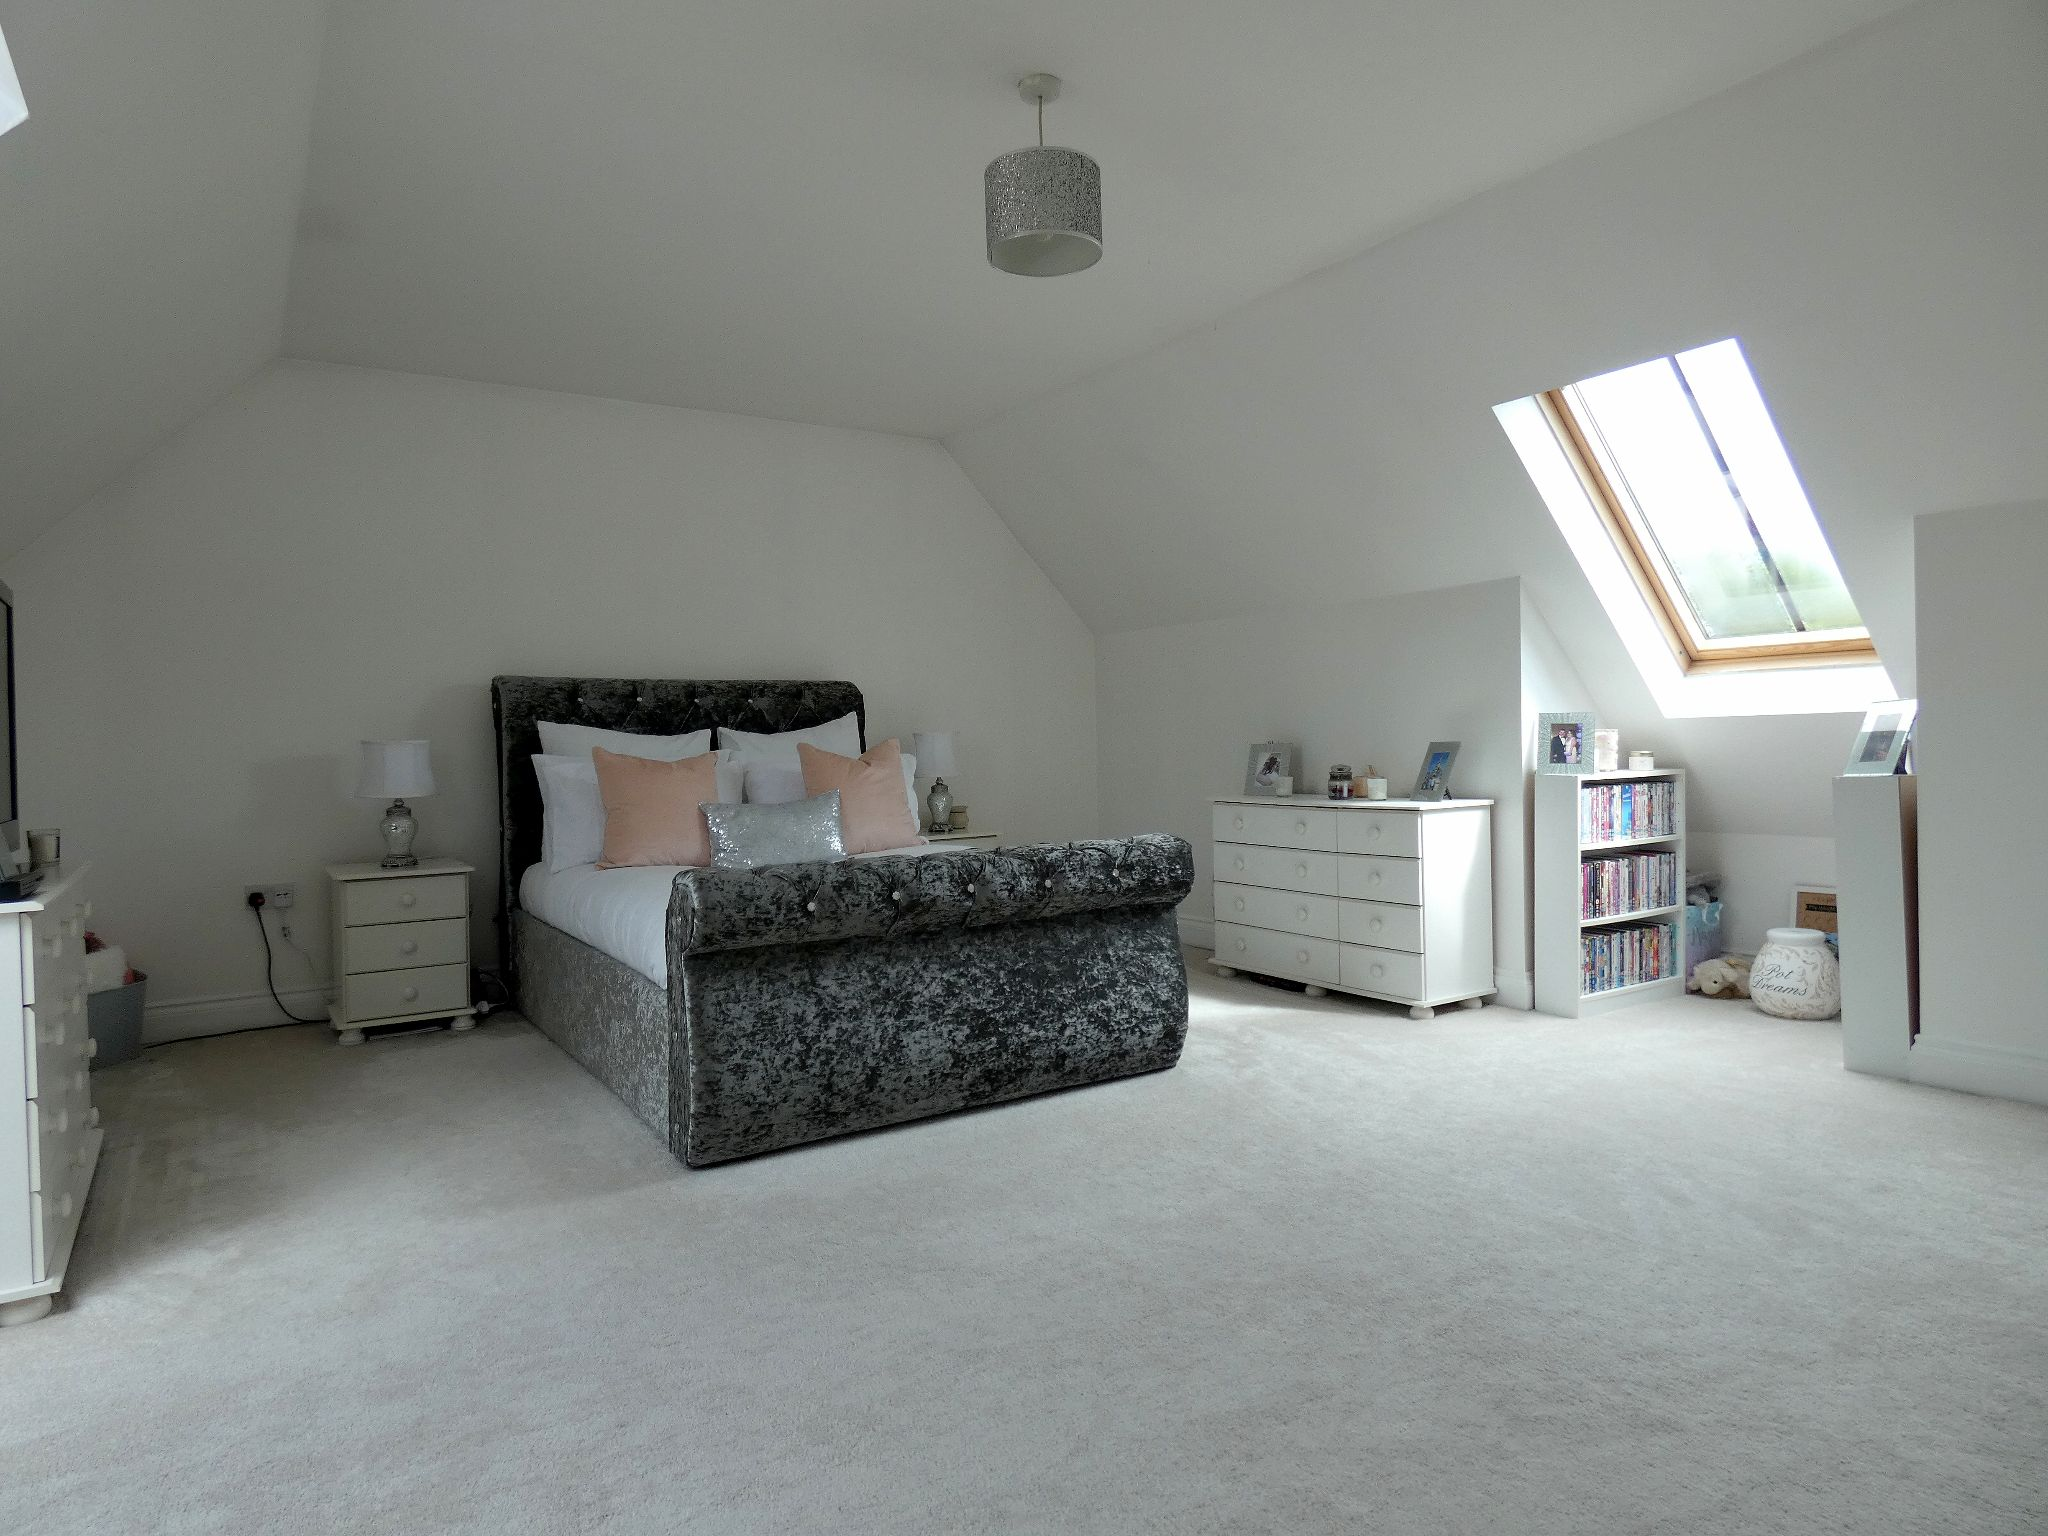 6 bedroom detached house For Sale in Bishop Auckland - Bedroom Five.